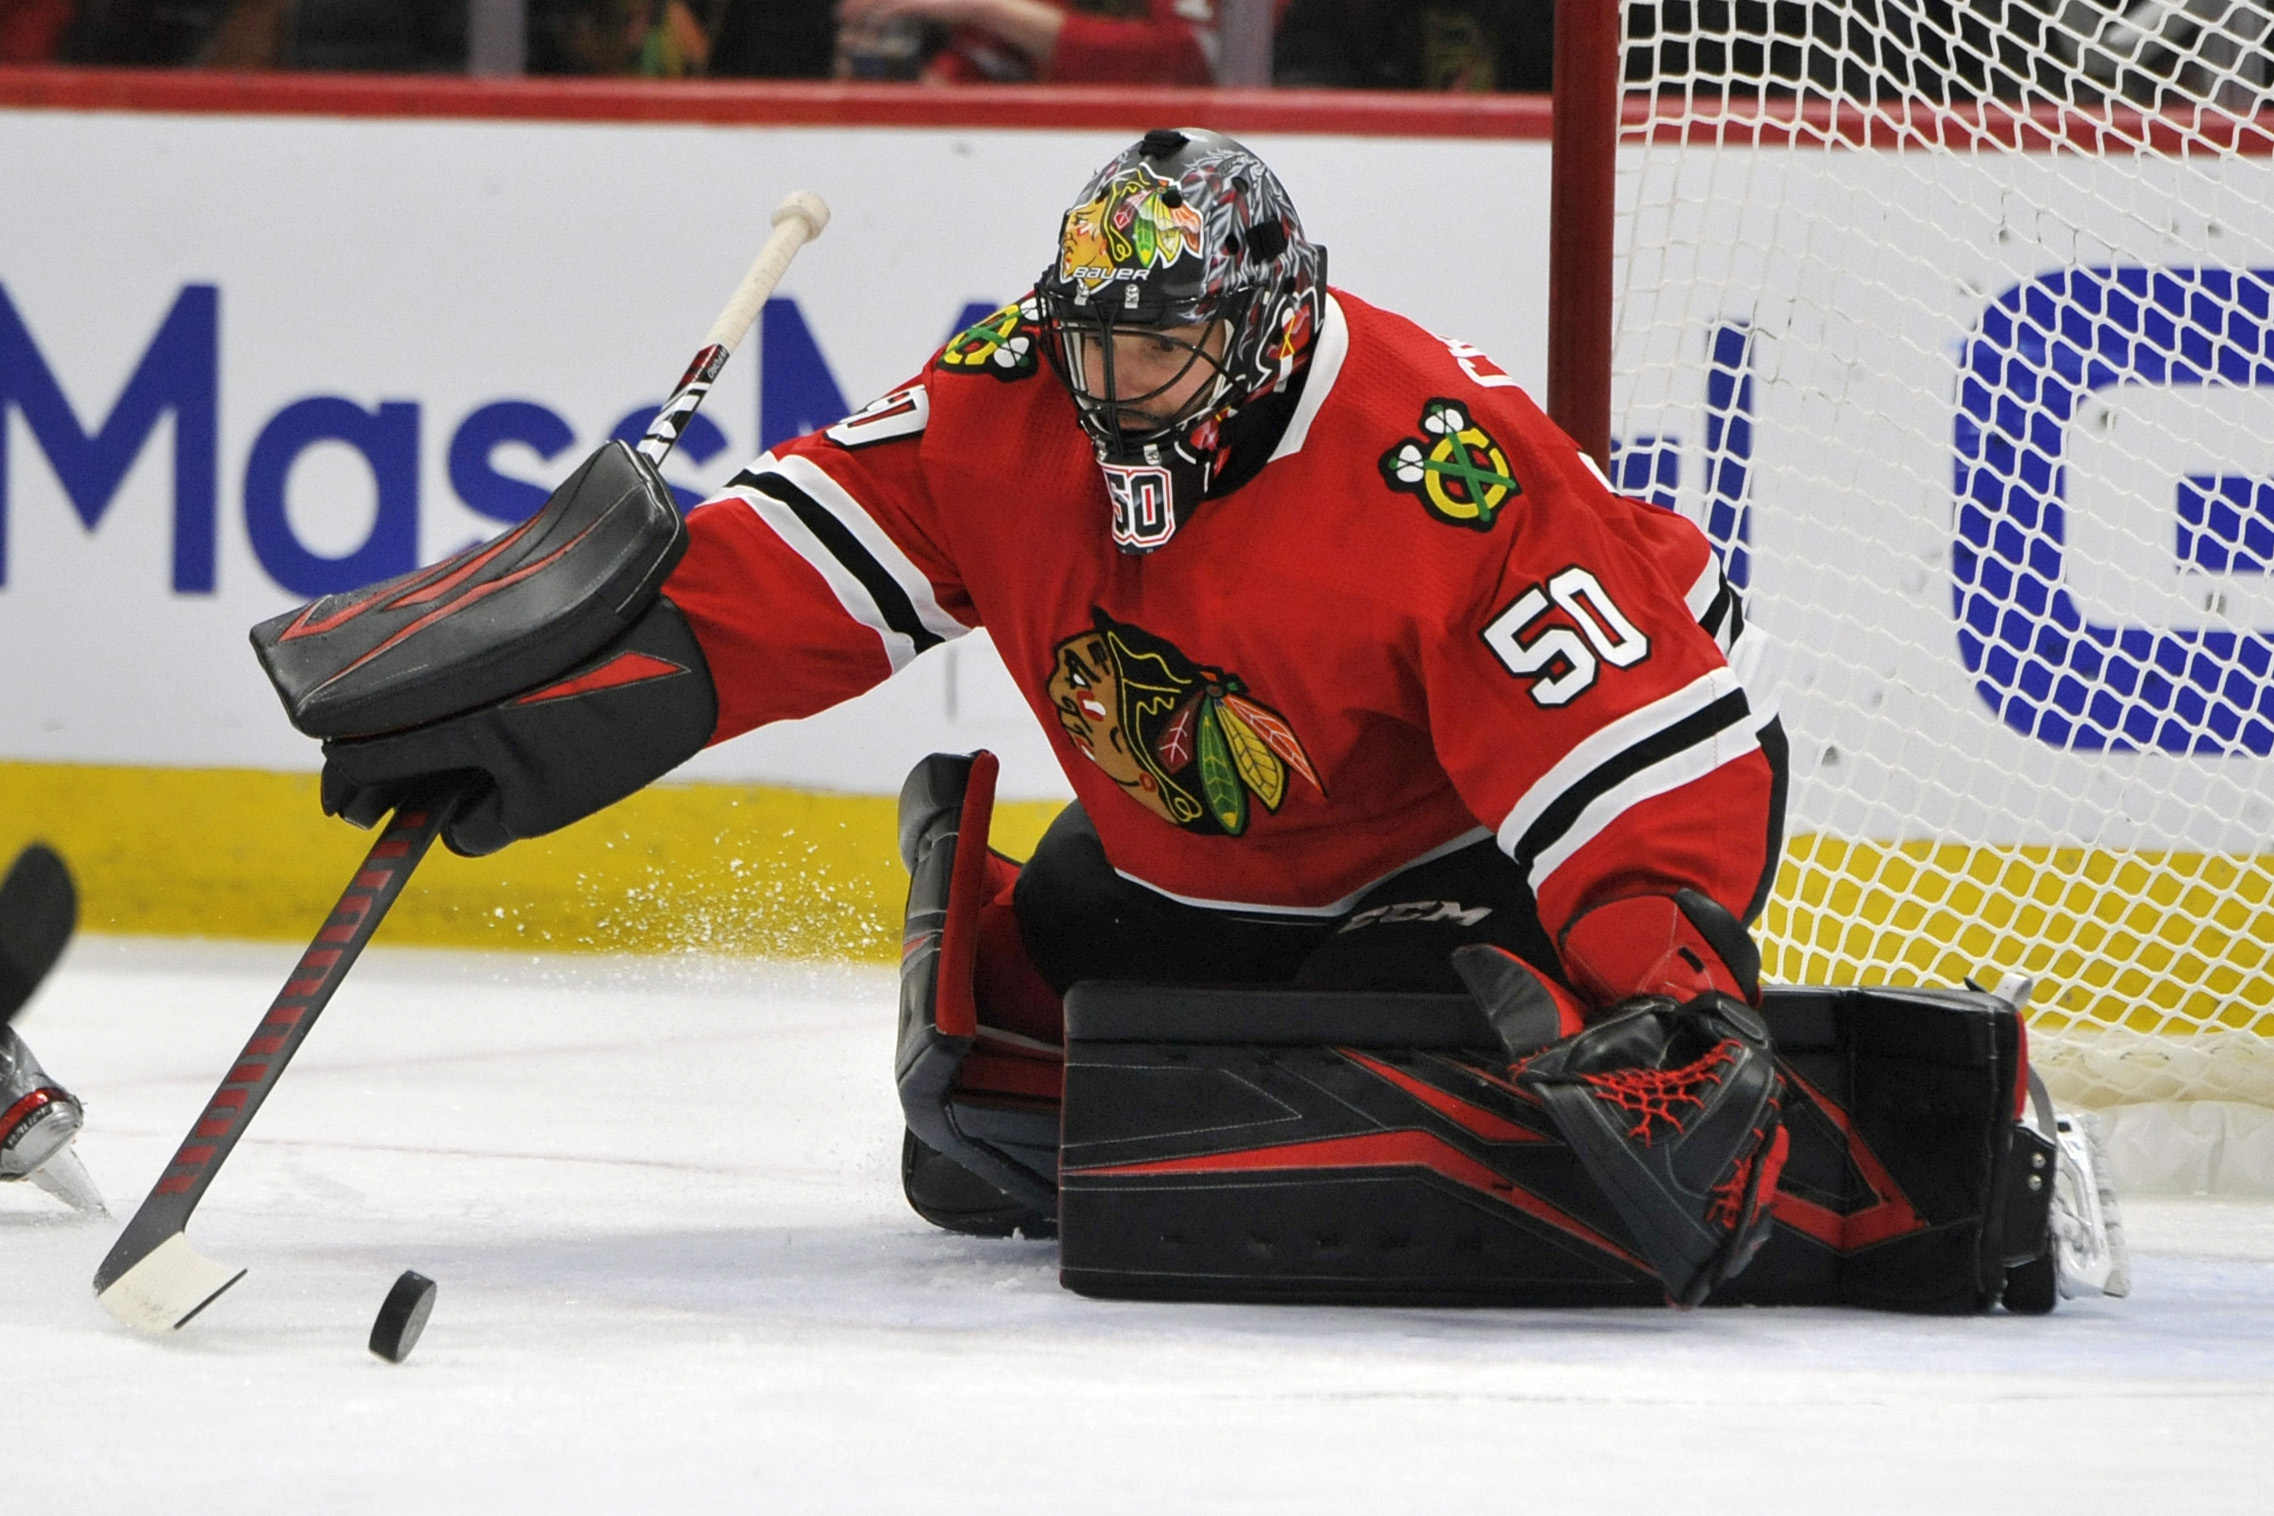 Goalie Corey Crawford is expected to be on the ice when the Blackhawks return to play this week.